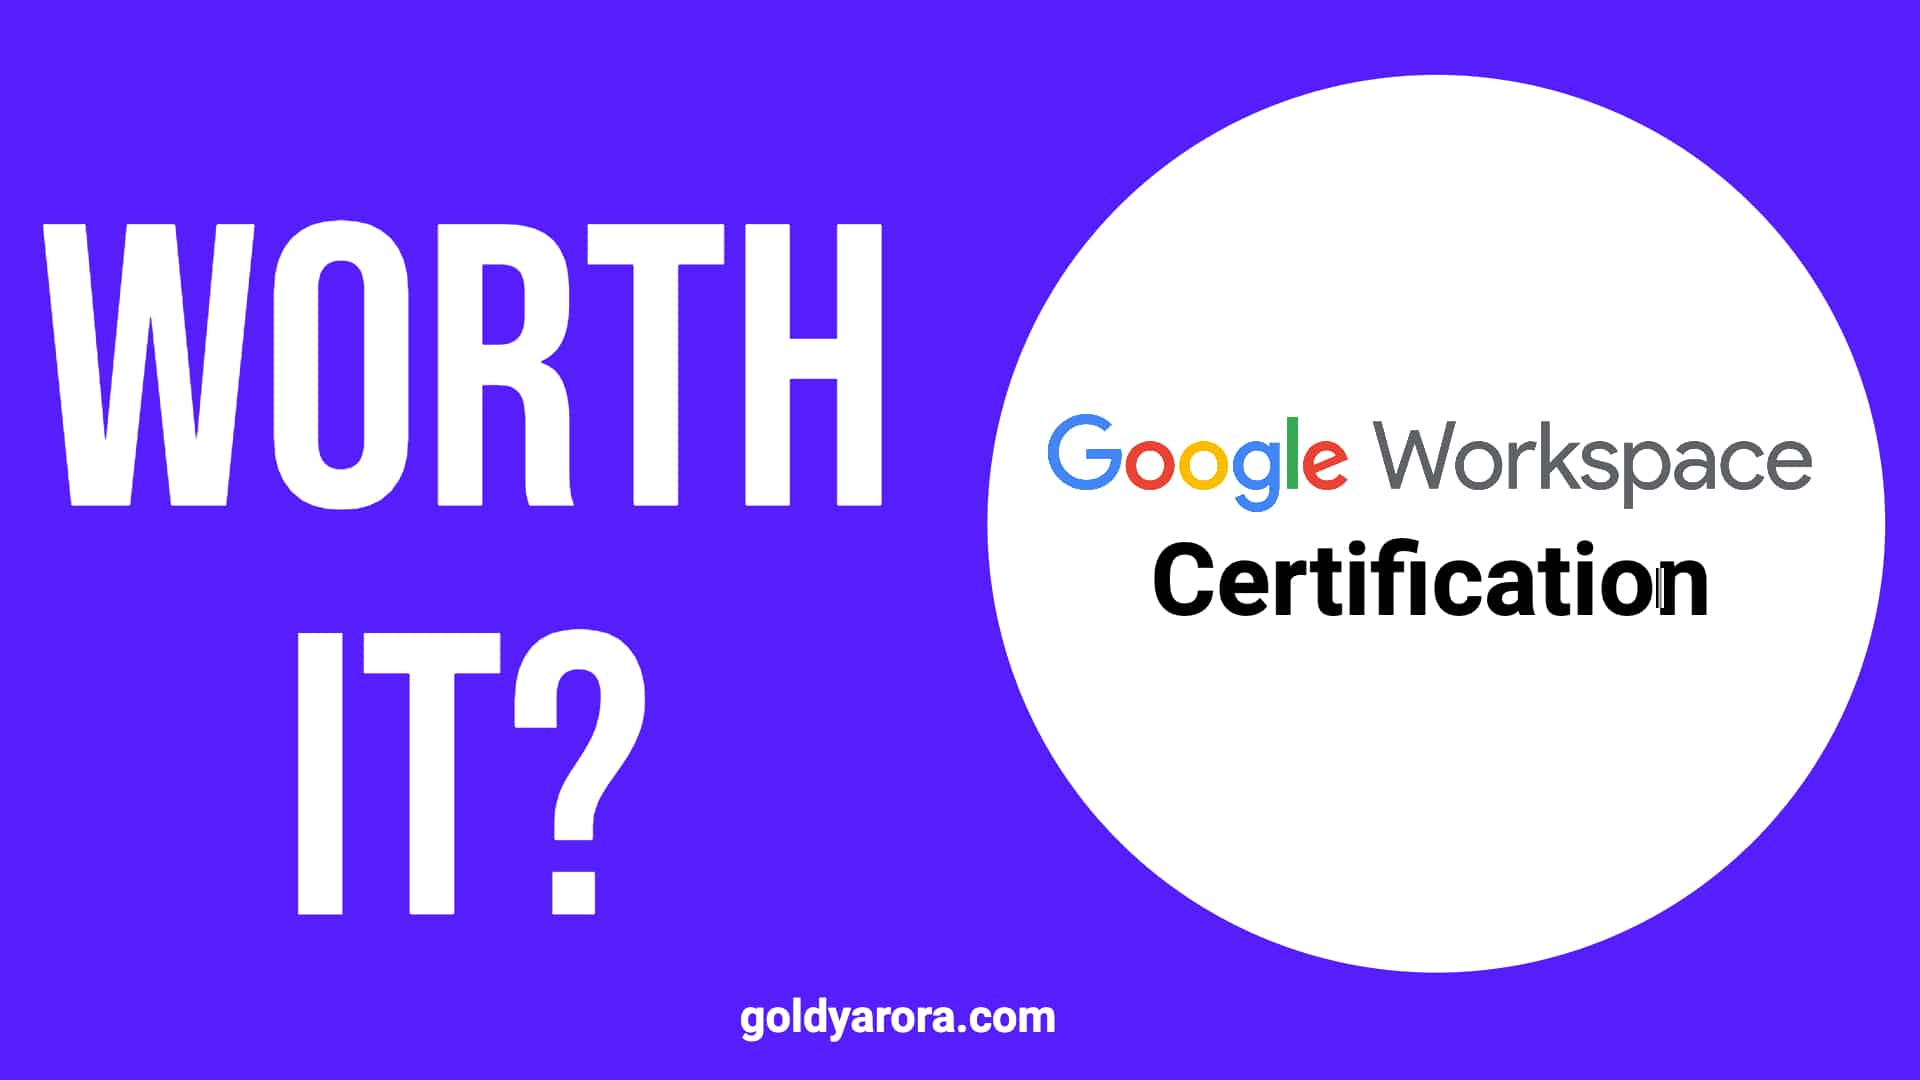 Google Workspace Certification - Is it worth it?